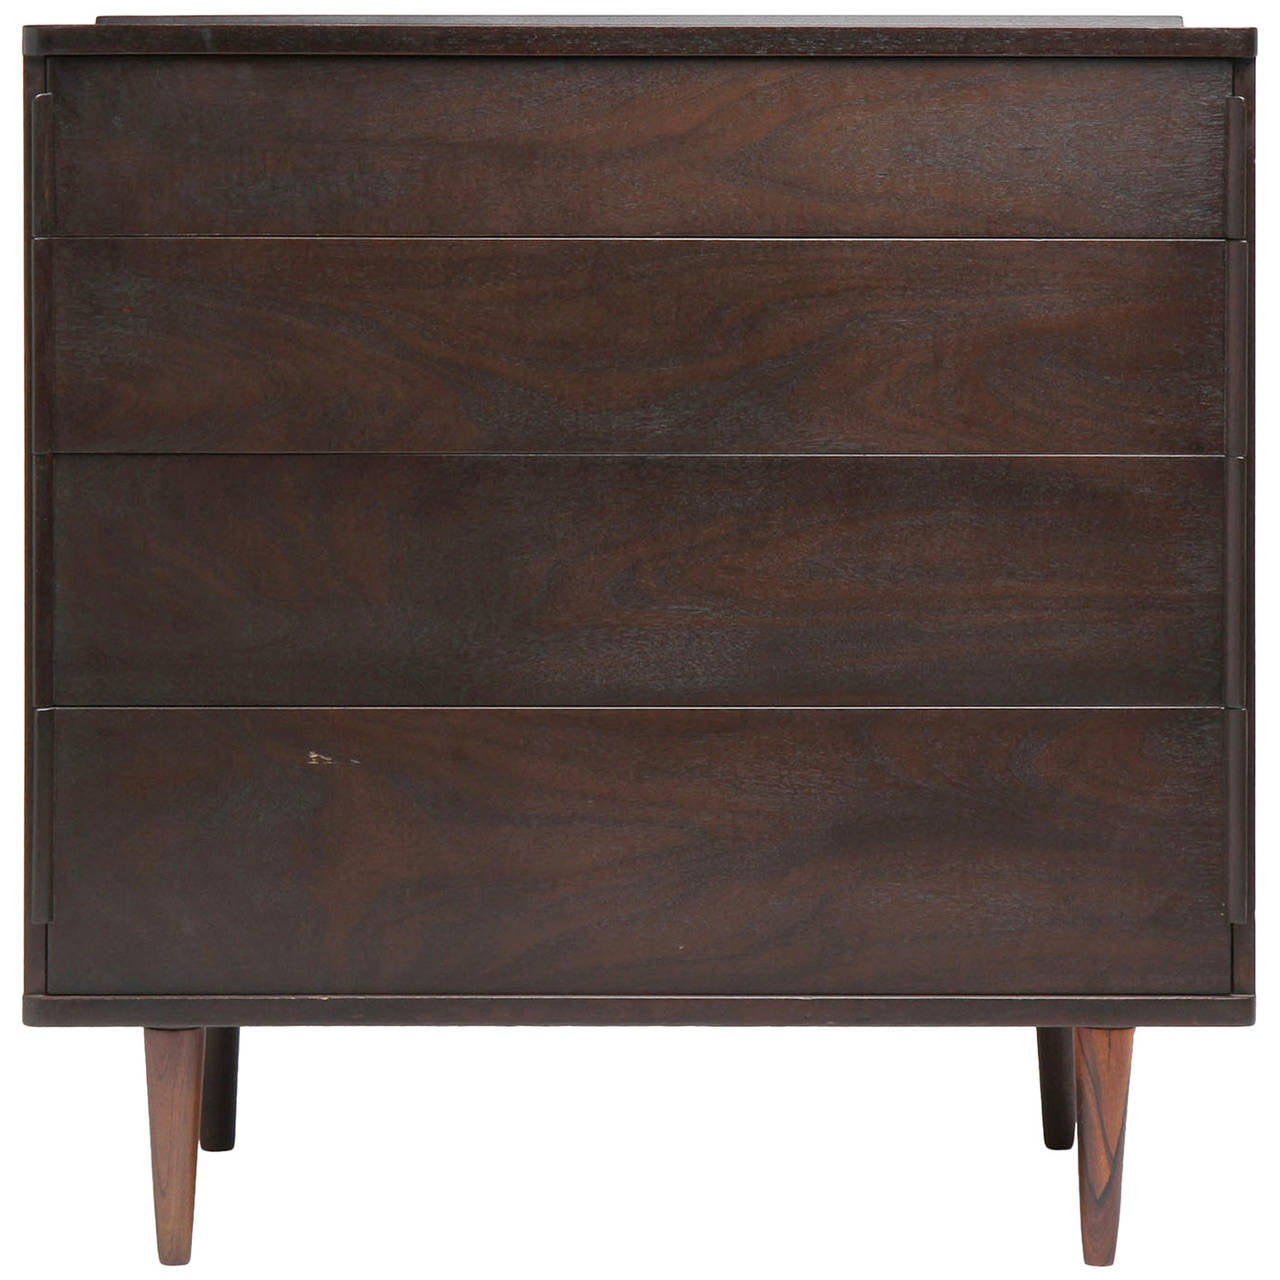 Chest of Drawers by Edward Wormley